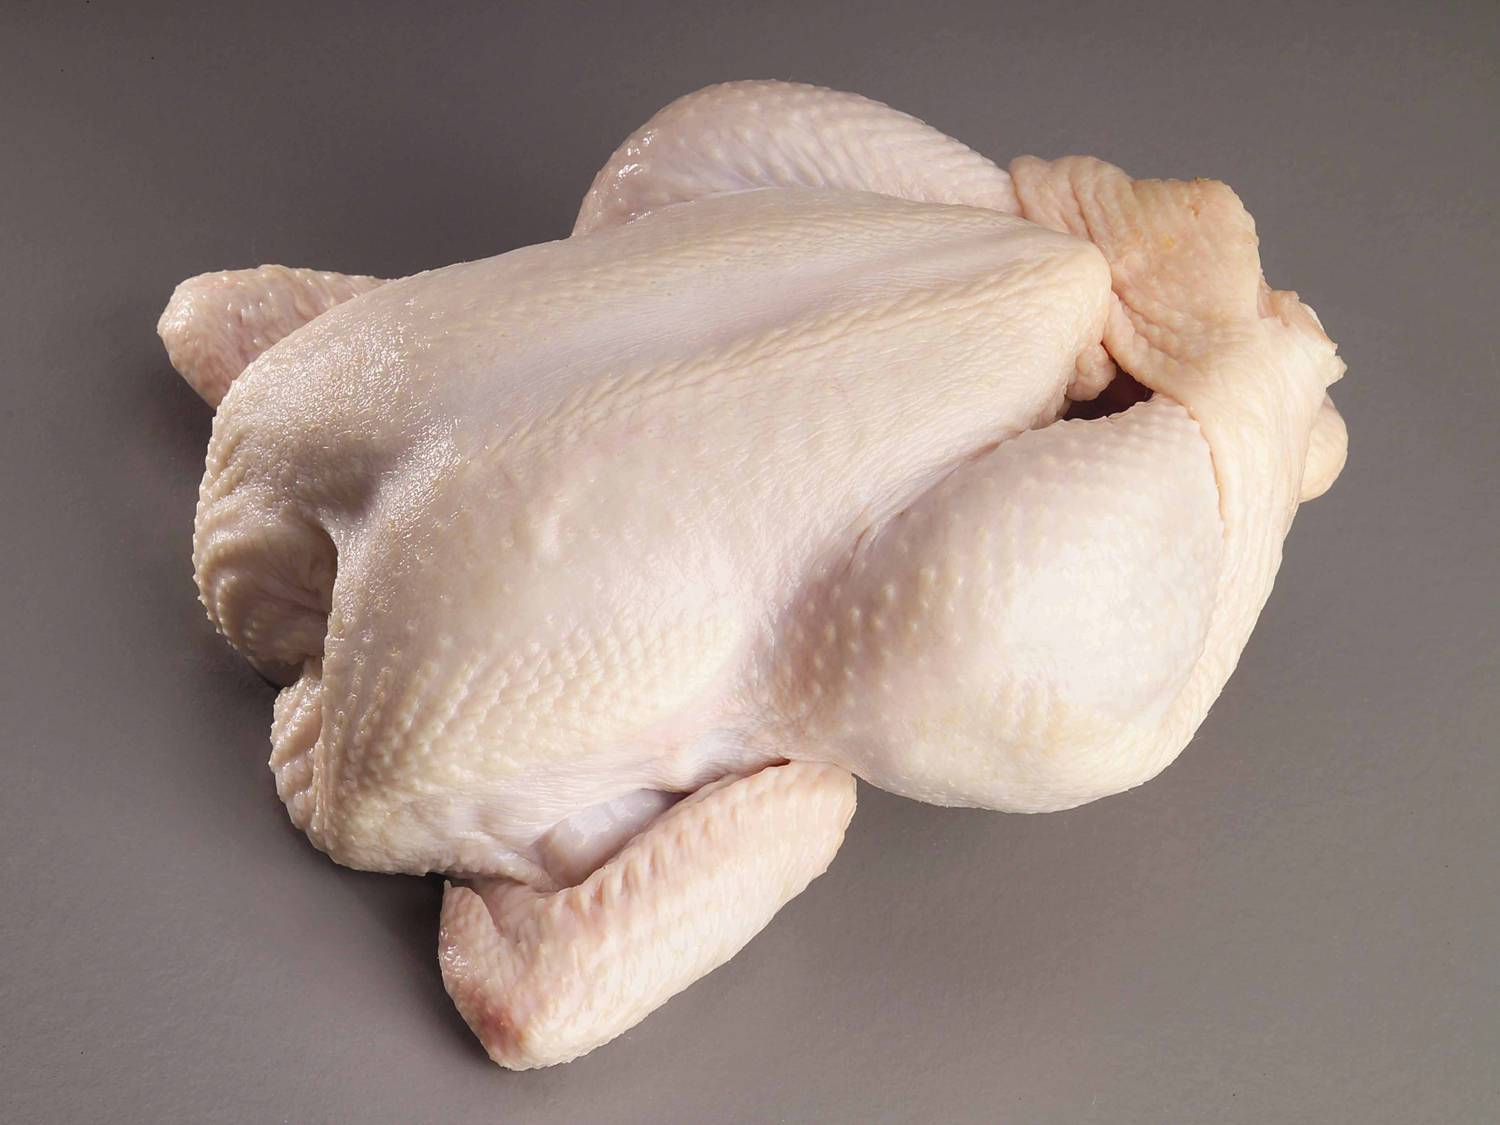 Quality Halal Whole Frozen Chicken